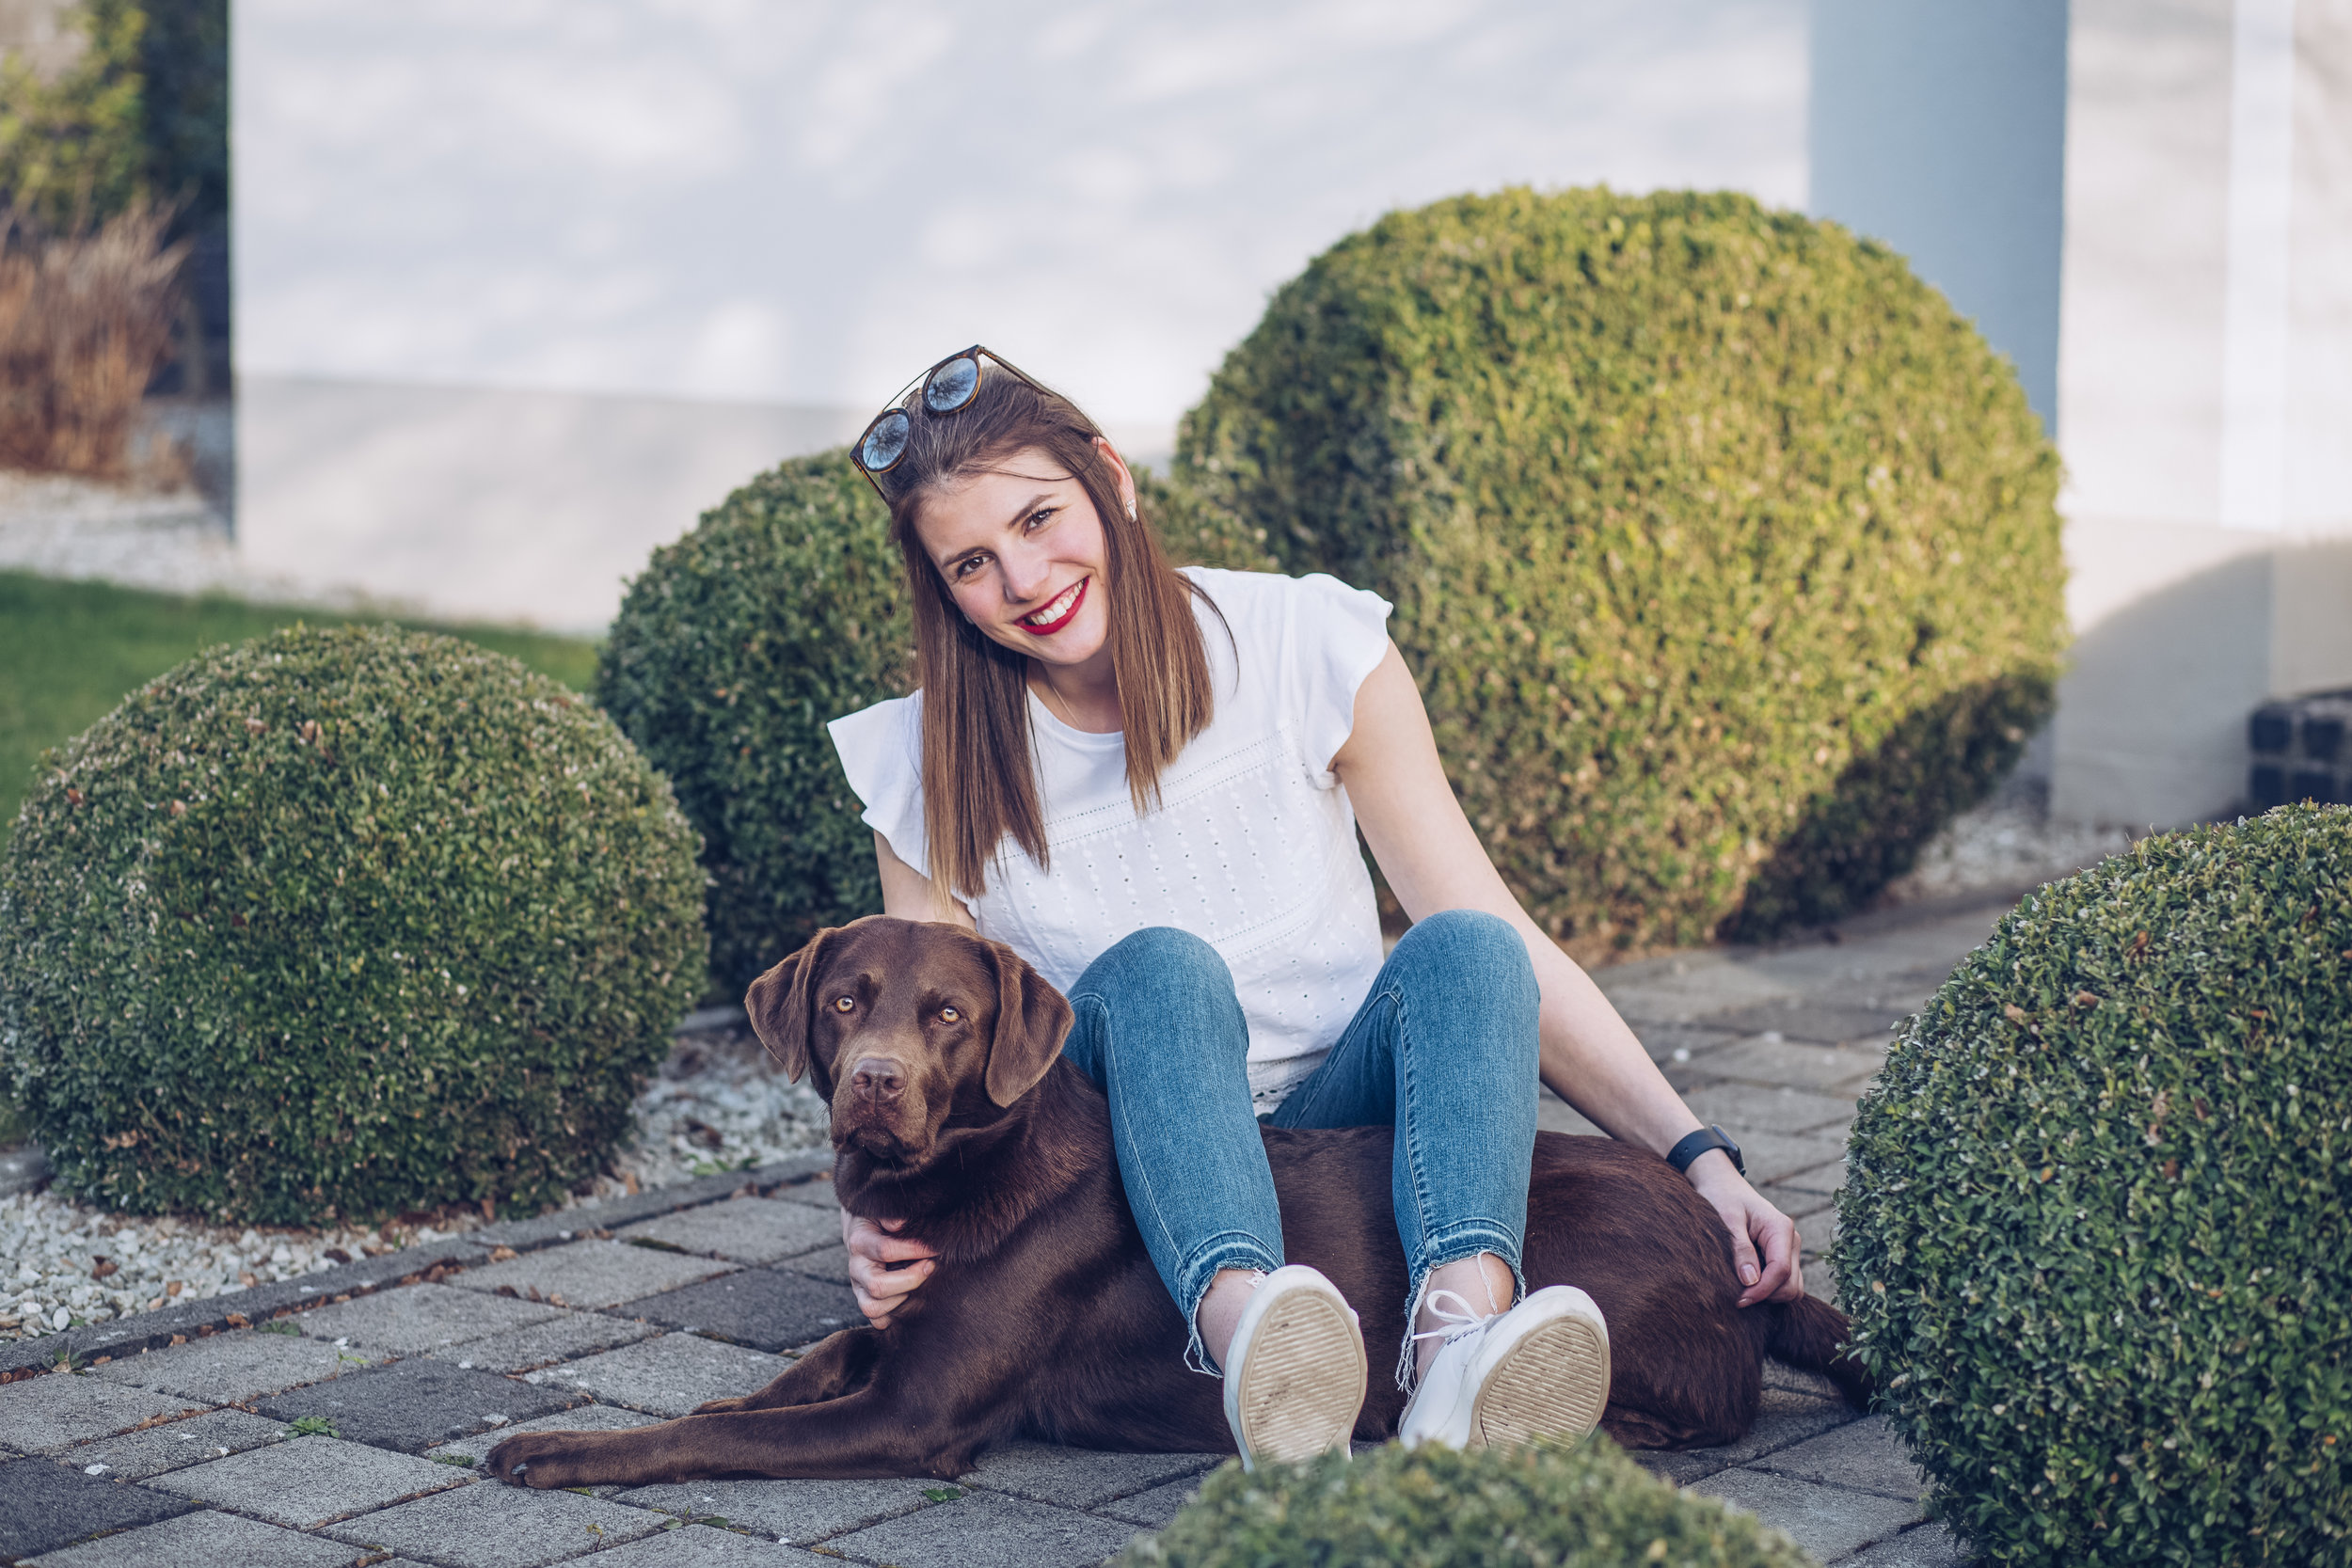 Homeshooting mit Hund4